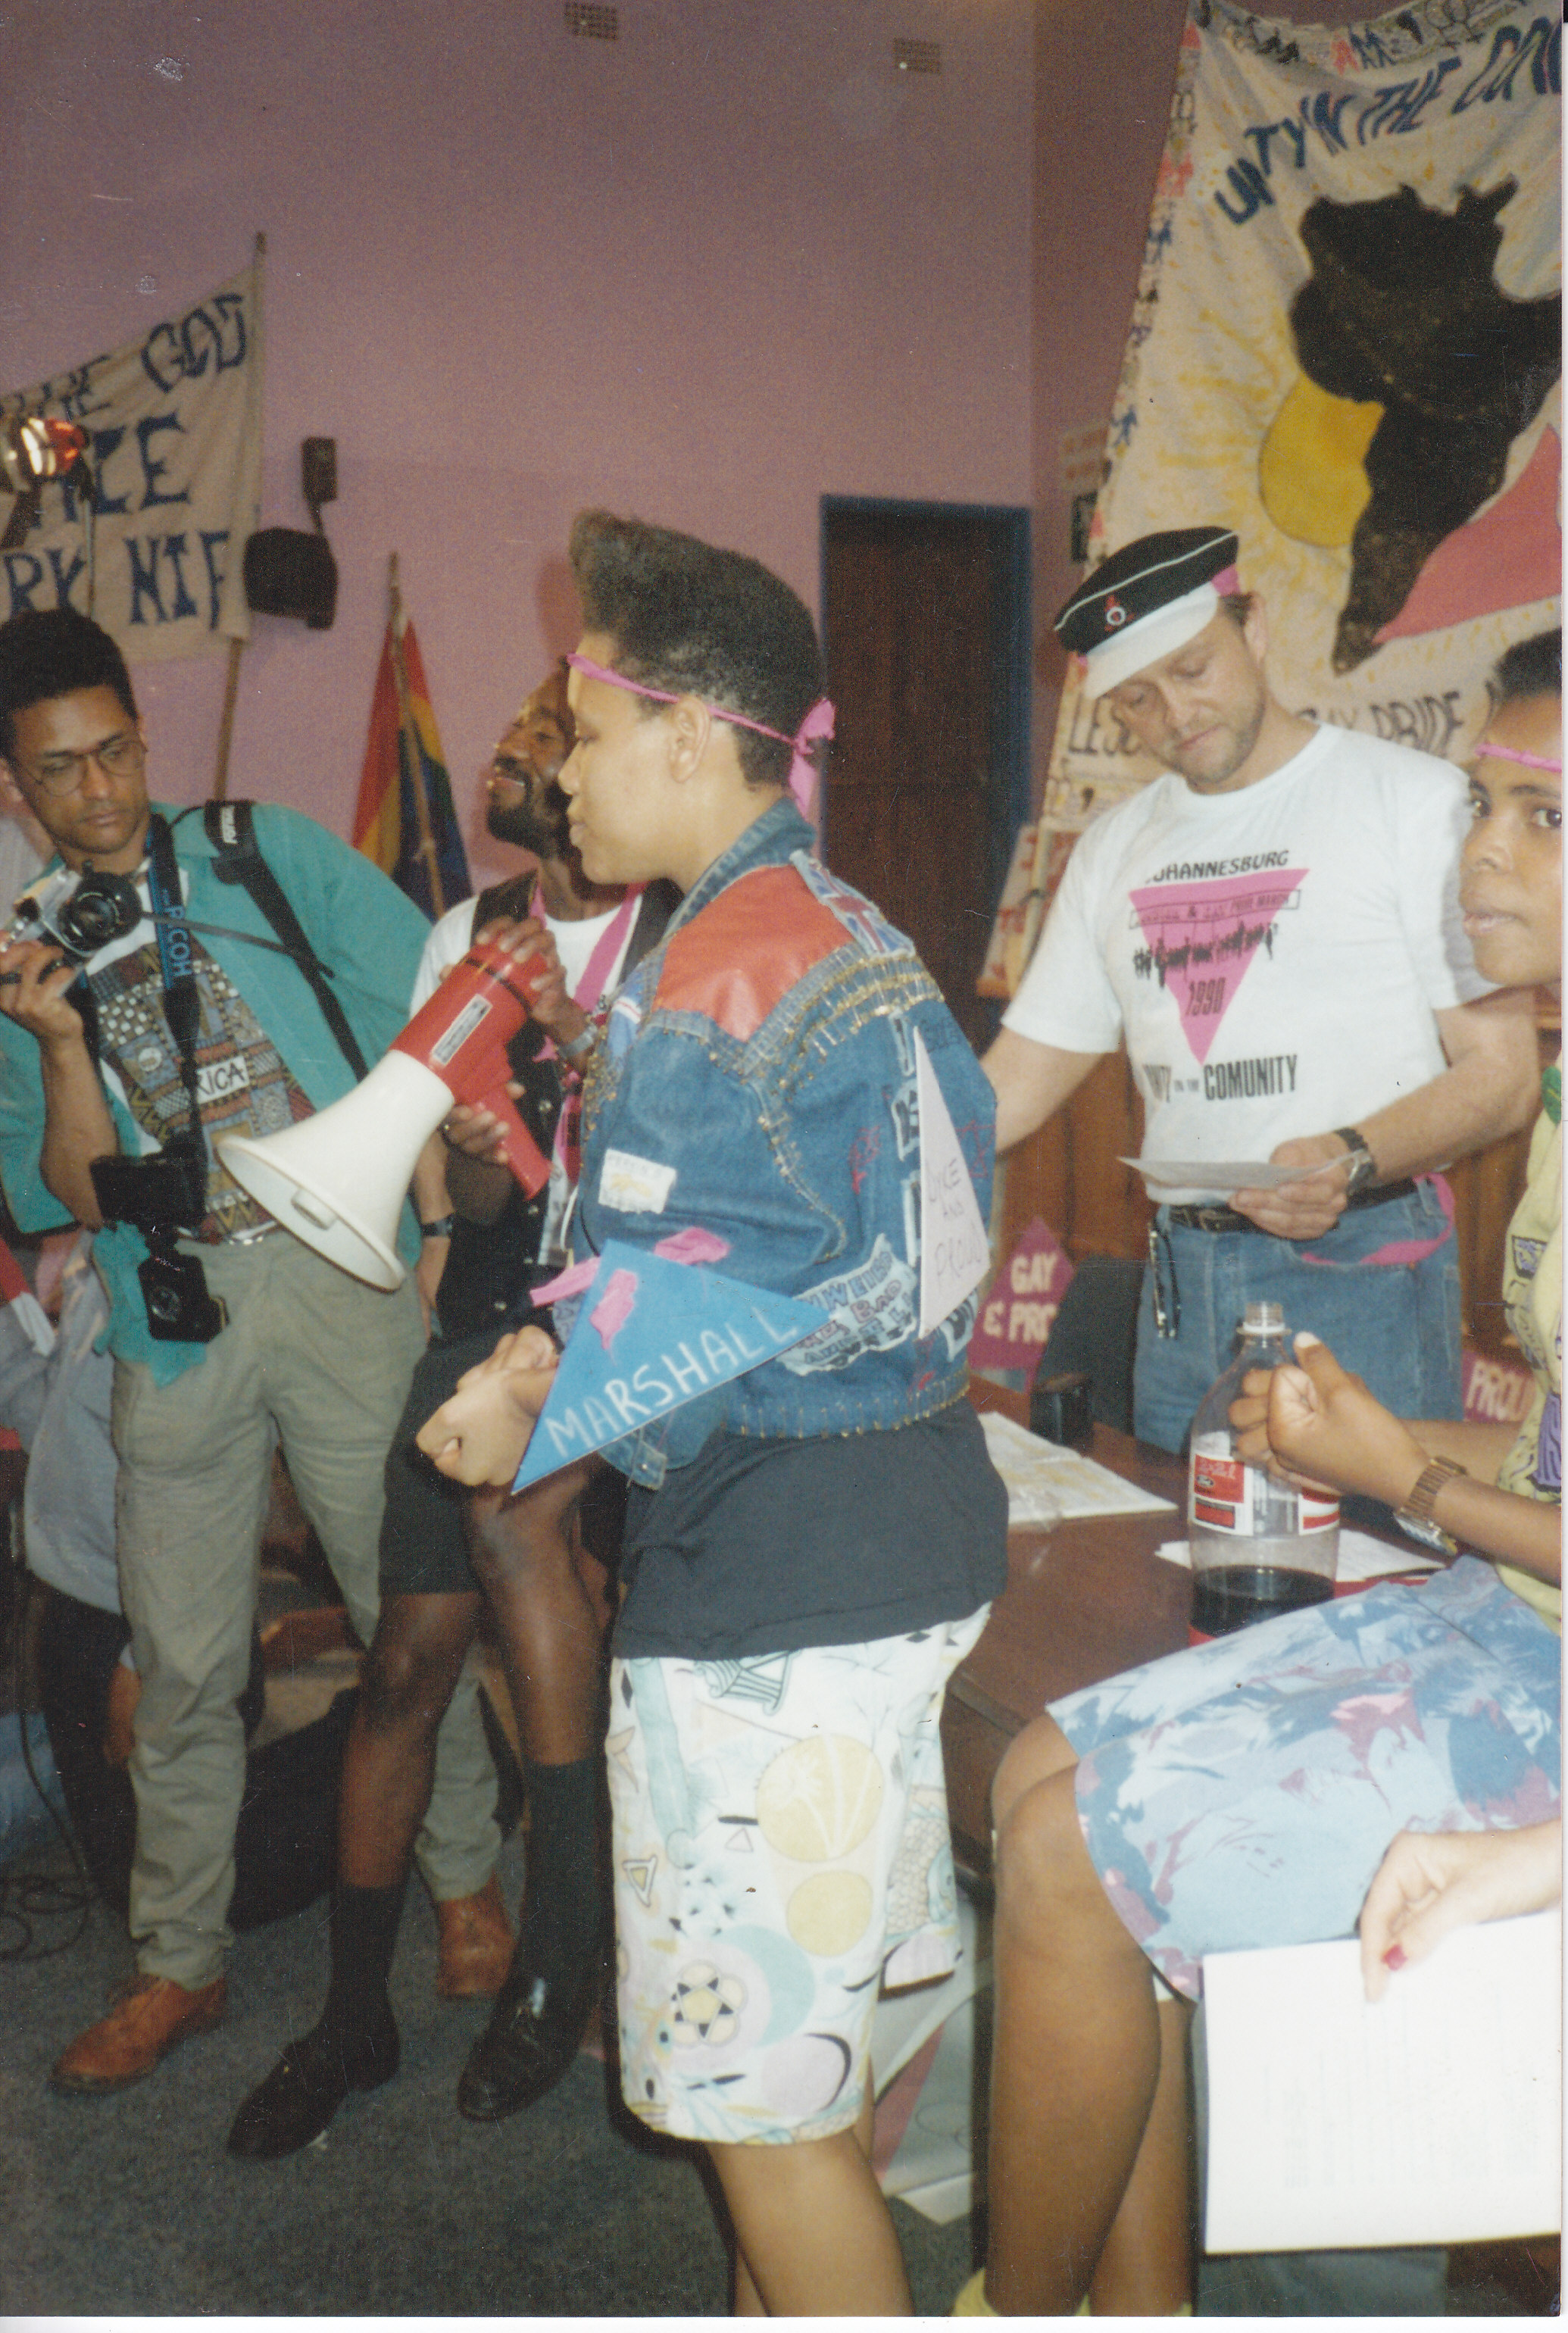 Beverley Ditsie speaks to the crowd before the first pride march in South Africa in Johannesburg in 1990. Photo Courtesy of Donné Rundle Collection/GALA Queer Archive/Johannesburg, South Africa